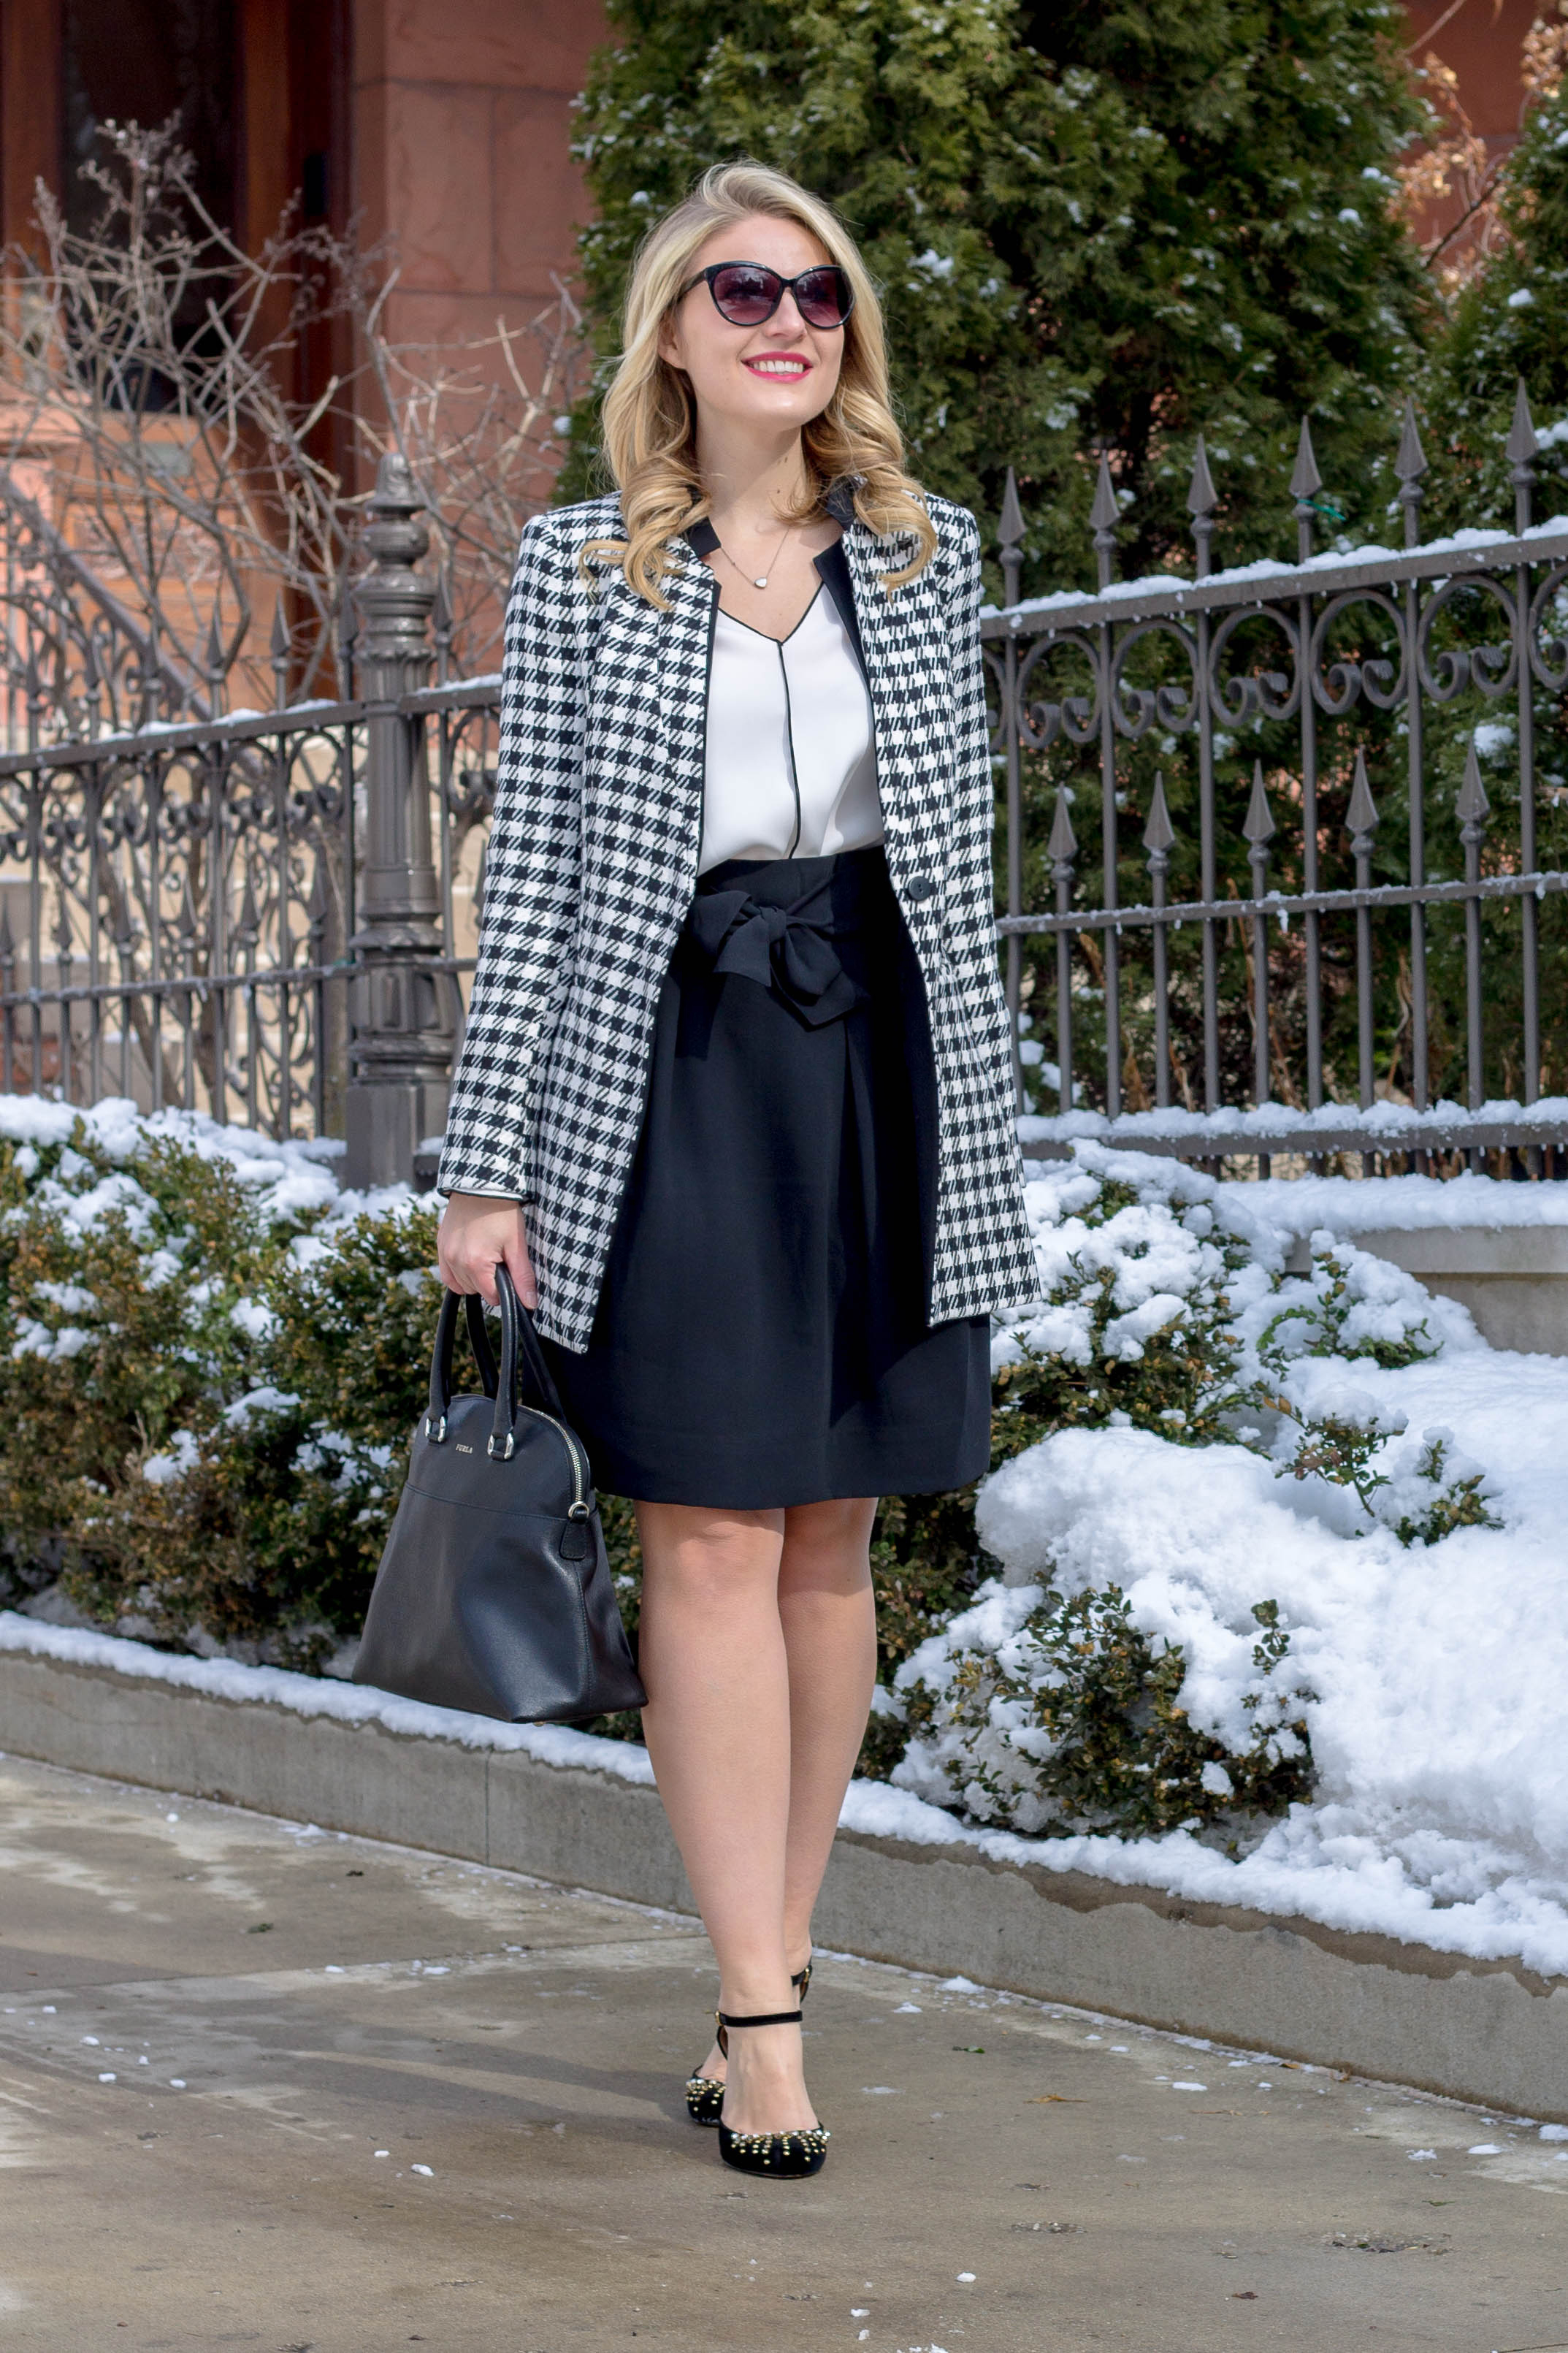 You need this Zara houndstooth jacket for under $100